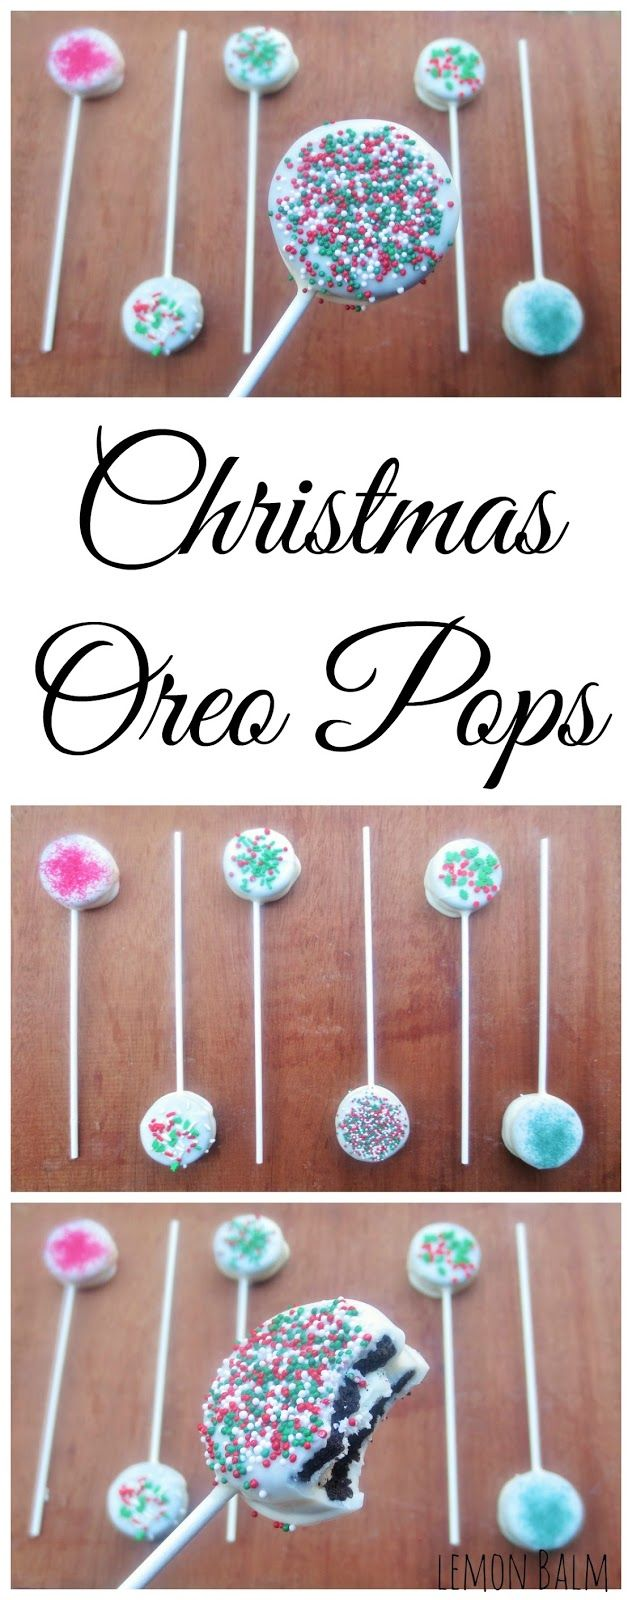 Christmas Oreo Pops http://macthelm.blogspot.com/ Easy and adorable, these Christmas Oreo Pops are a perfect treat to make with kids!